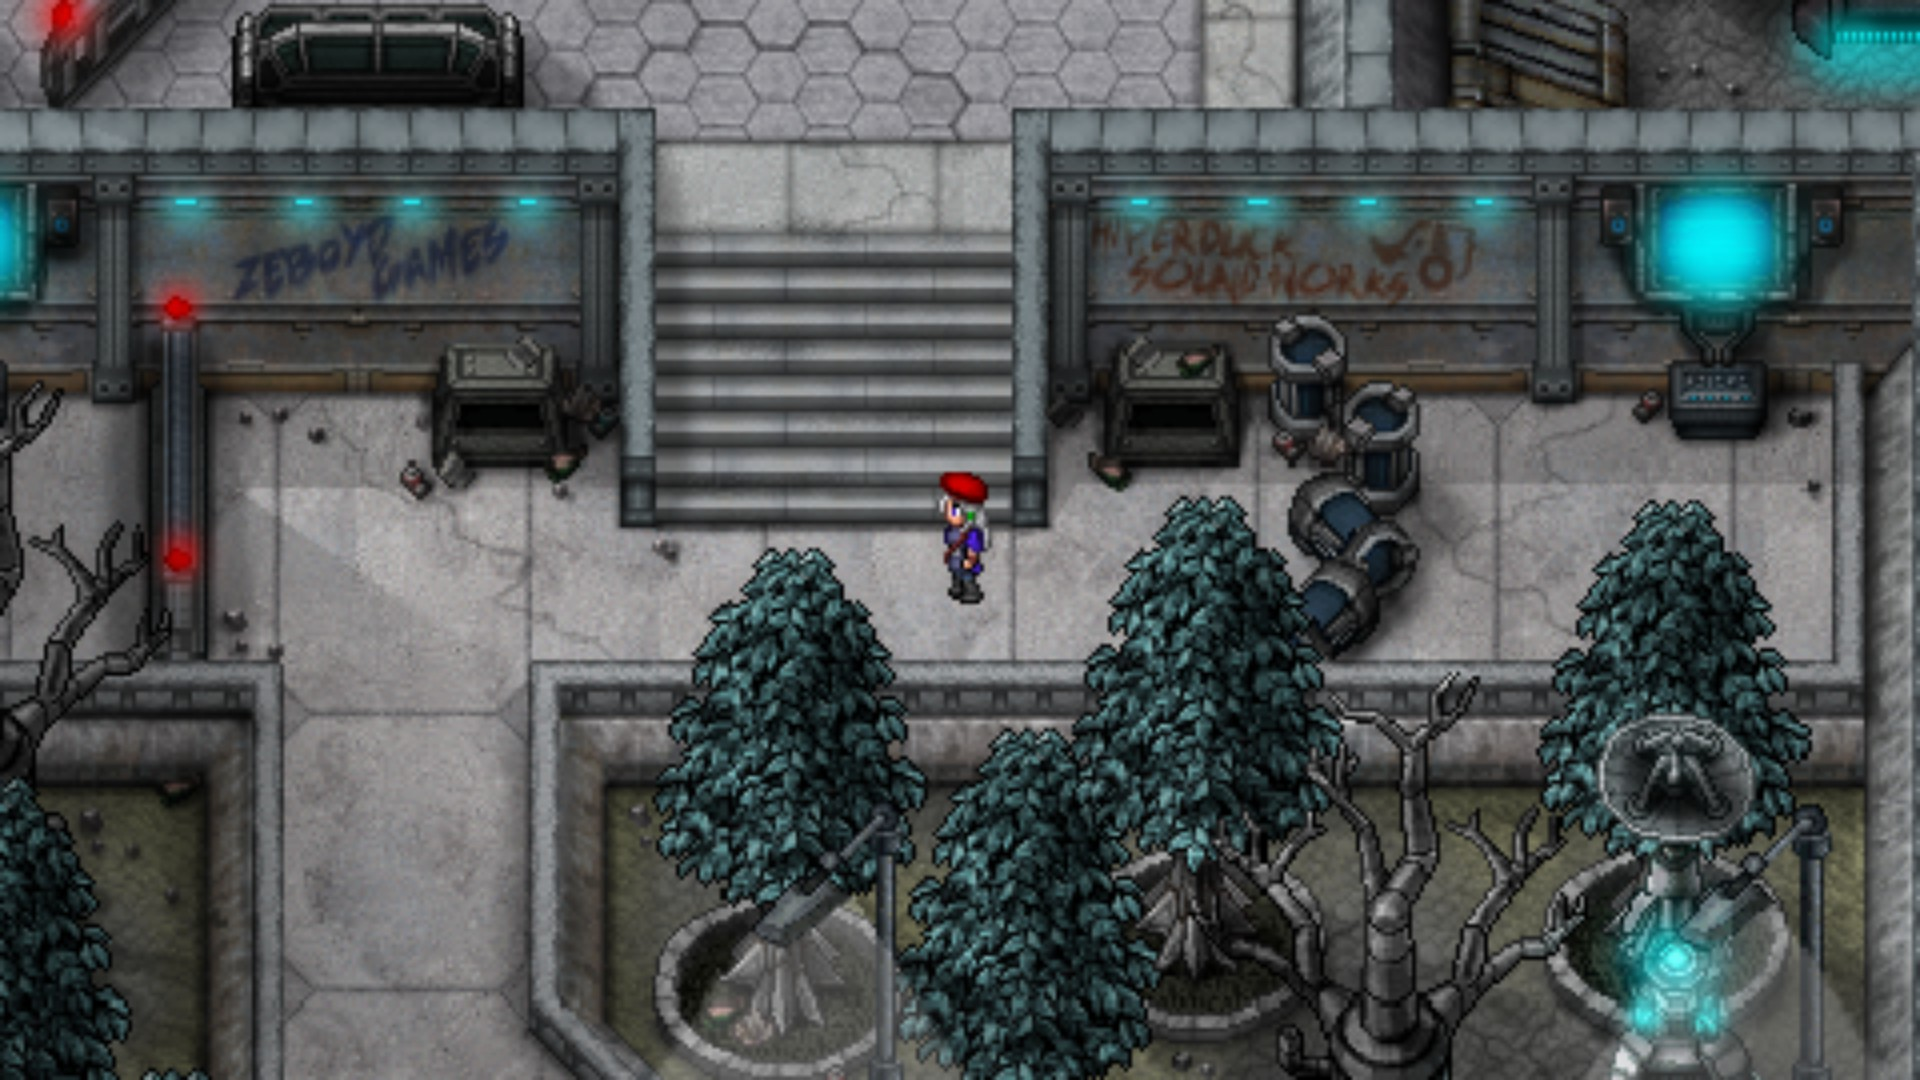 Cosmic Star Heroine | Graffiti